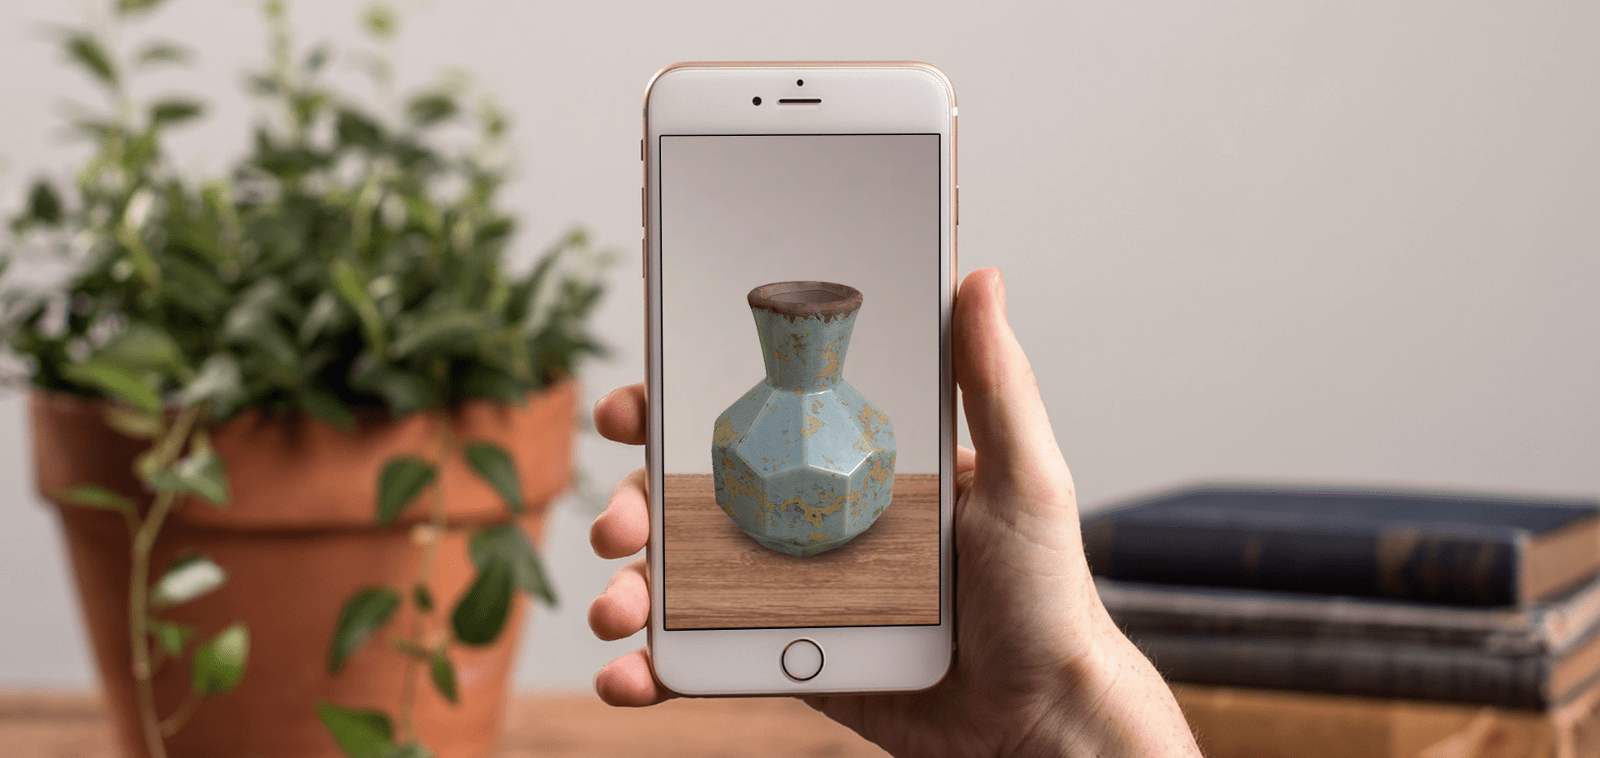 shopify AR usdz quick look vectary embed